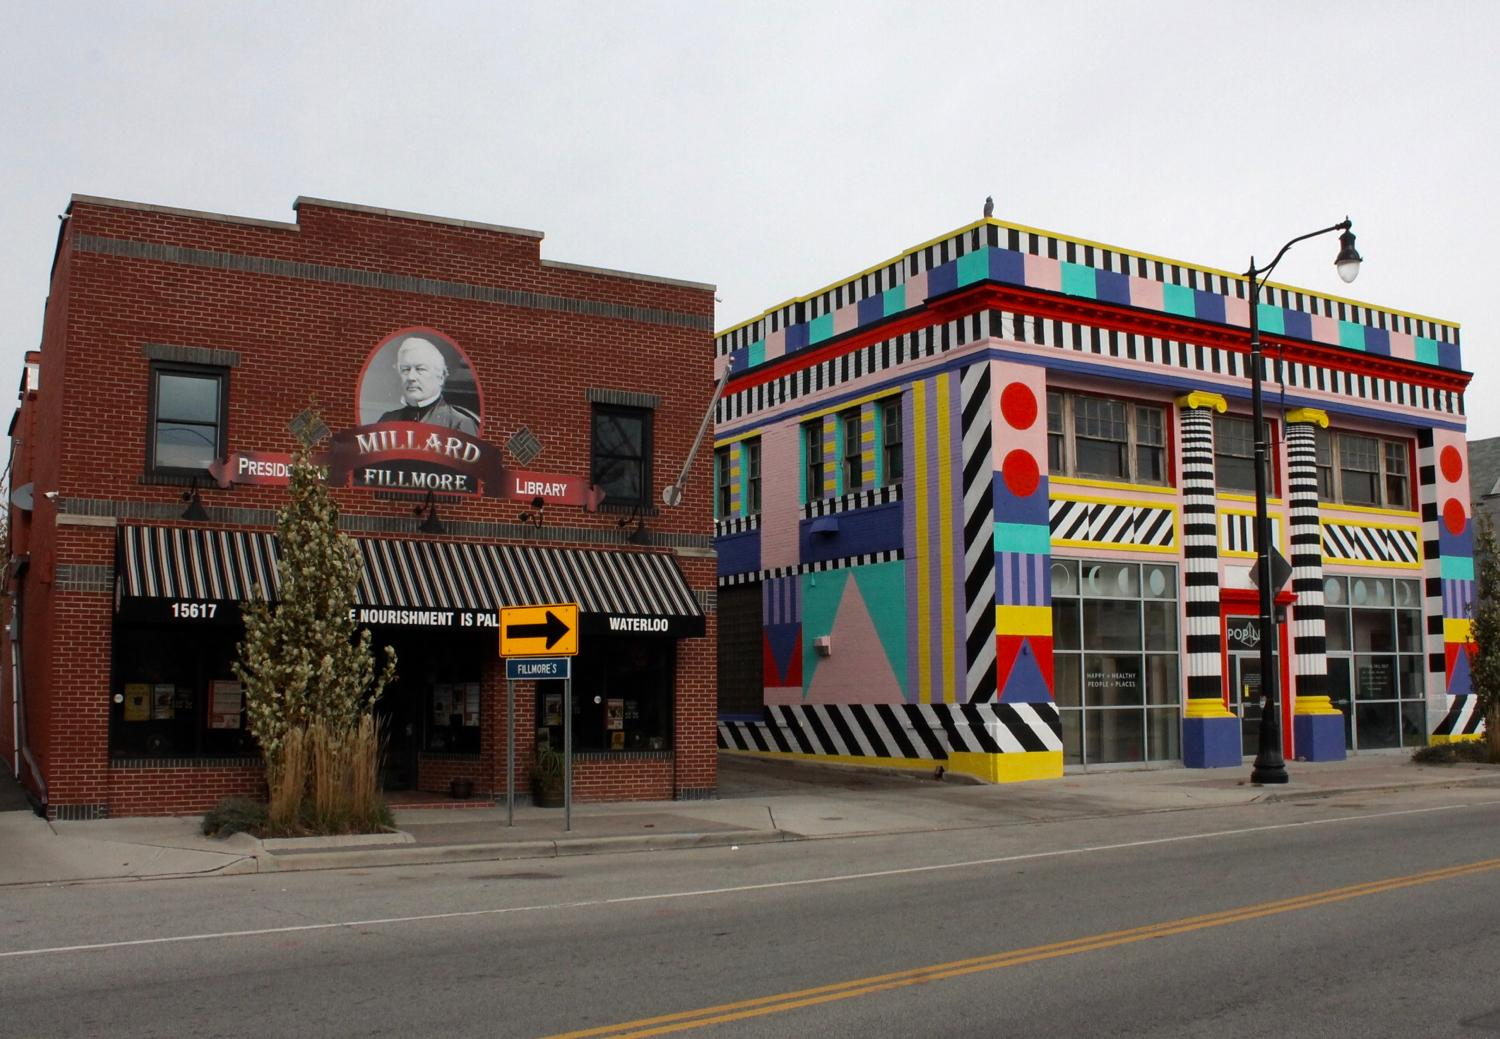 "The Waterloo Arts District is a half-mile stretch of Waterloo Road in the Collinwood Community of Cleveland. Artists have embraced this community as a ""welcoming hub of creativity,"" so here you will no shortage of art galleries, music venues, and good food. ADDRESS: 15605 Waterloo Rd., Cleveland, OH 44110 / Image: Rose Brewington // Published: 11.22.17"